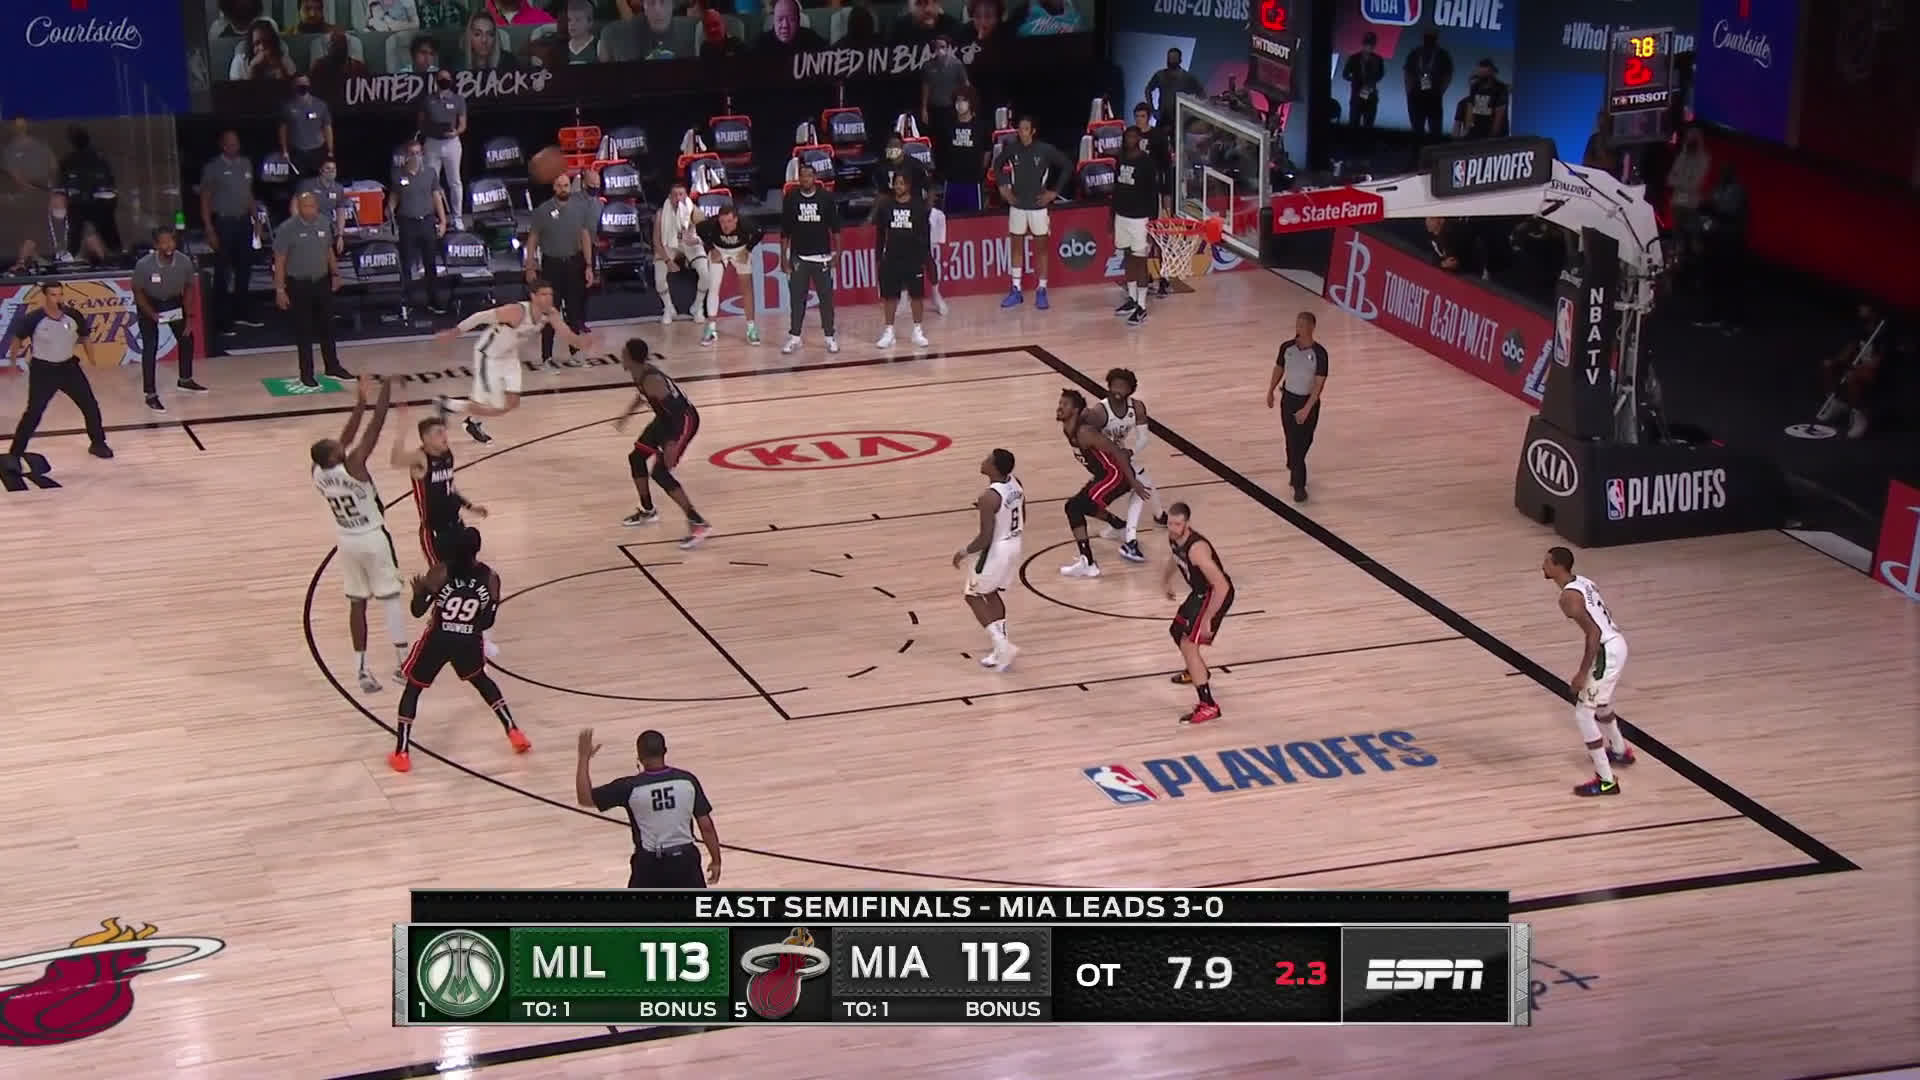 [Highlight] Middleton hits the dagger to give the Bucks a 4 point lead with 6.3 secs remaining